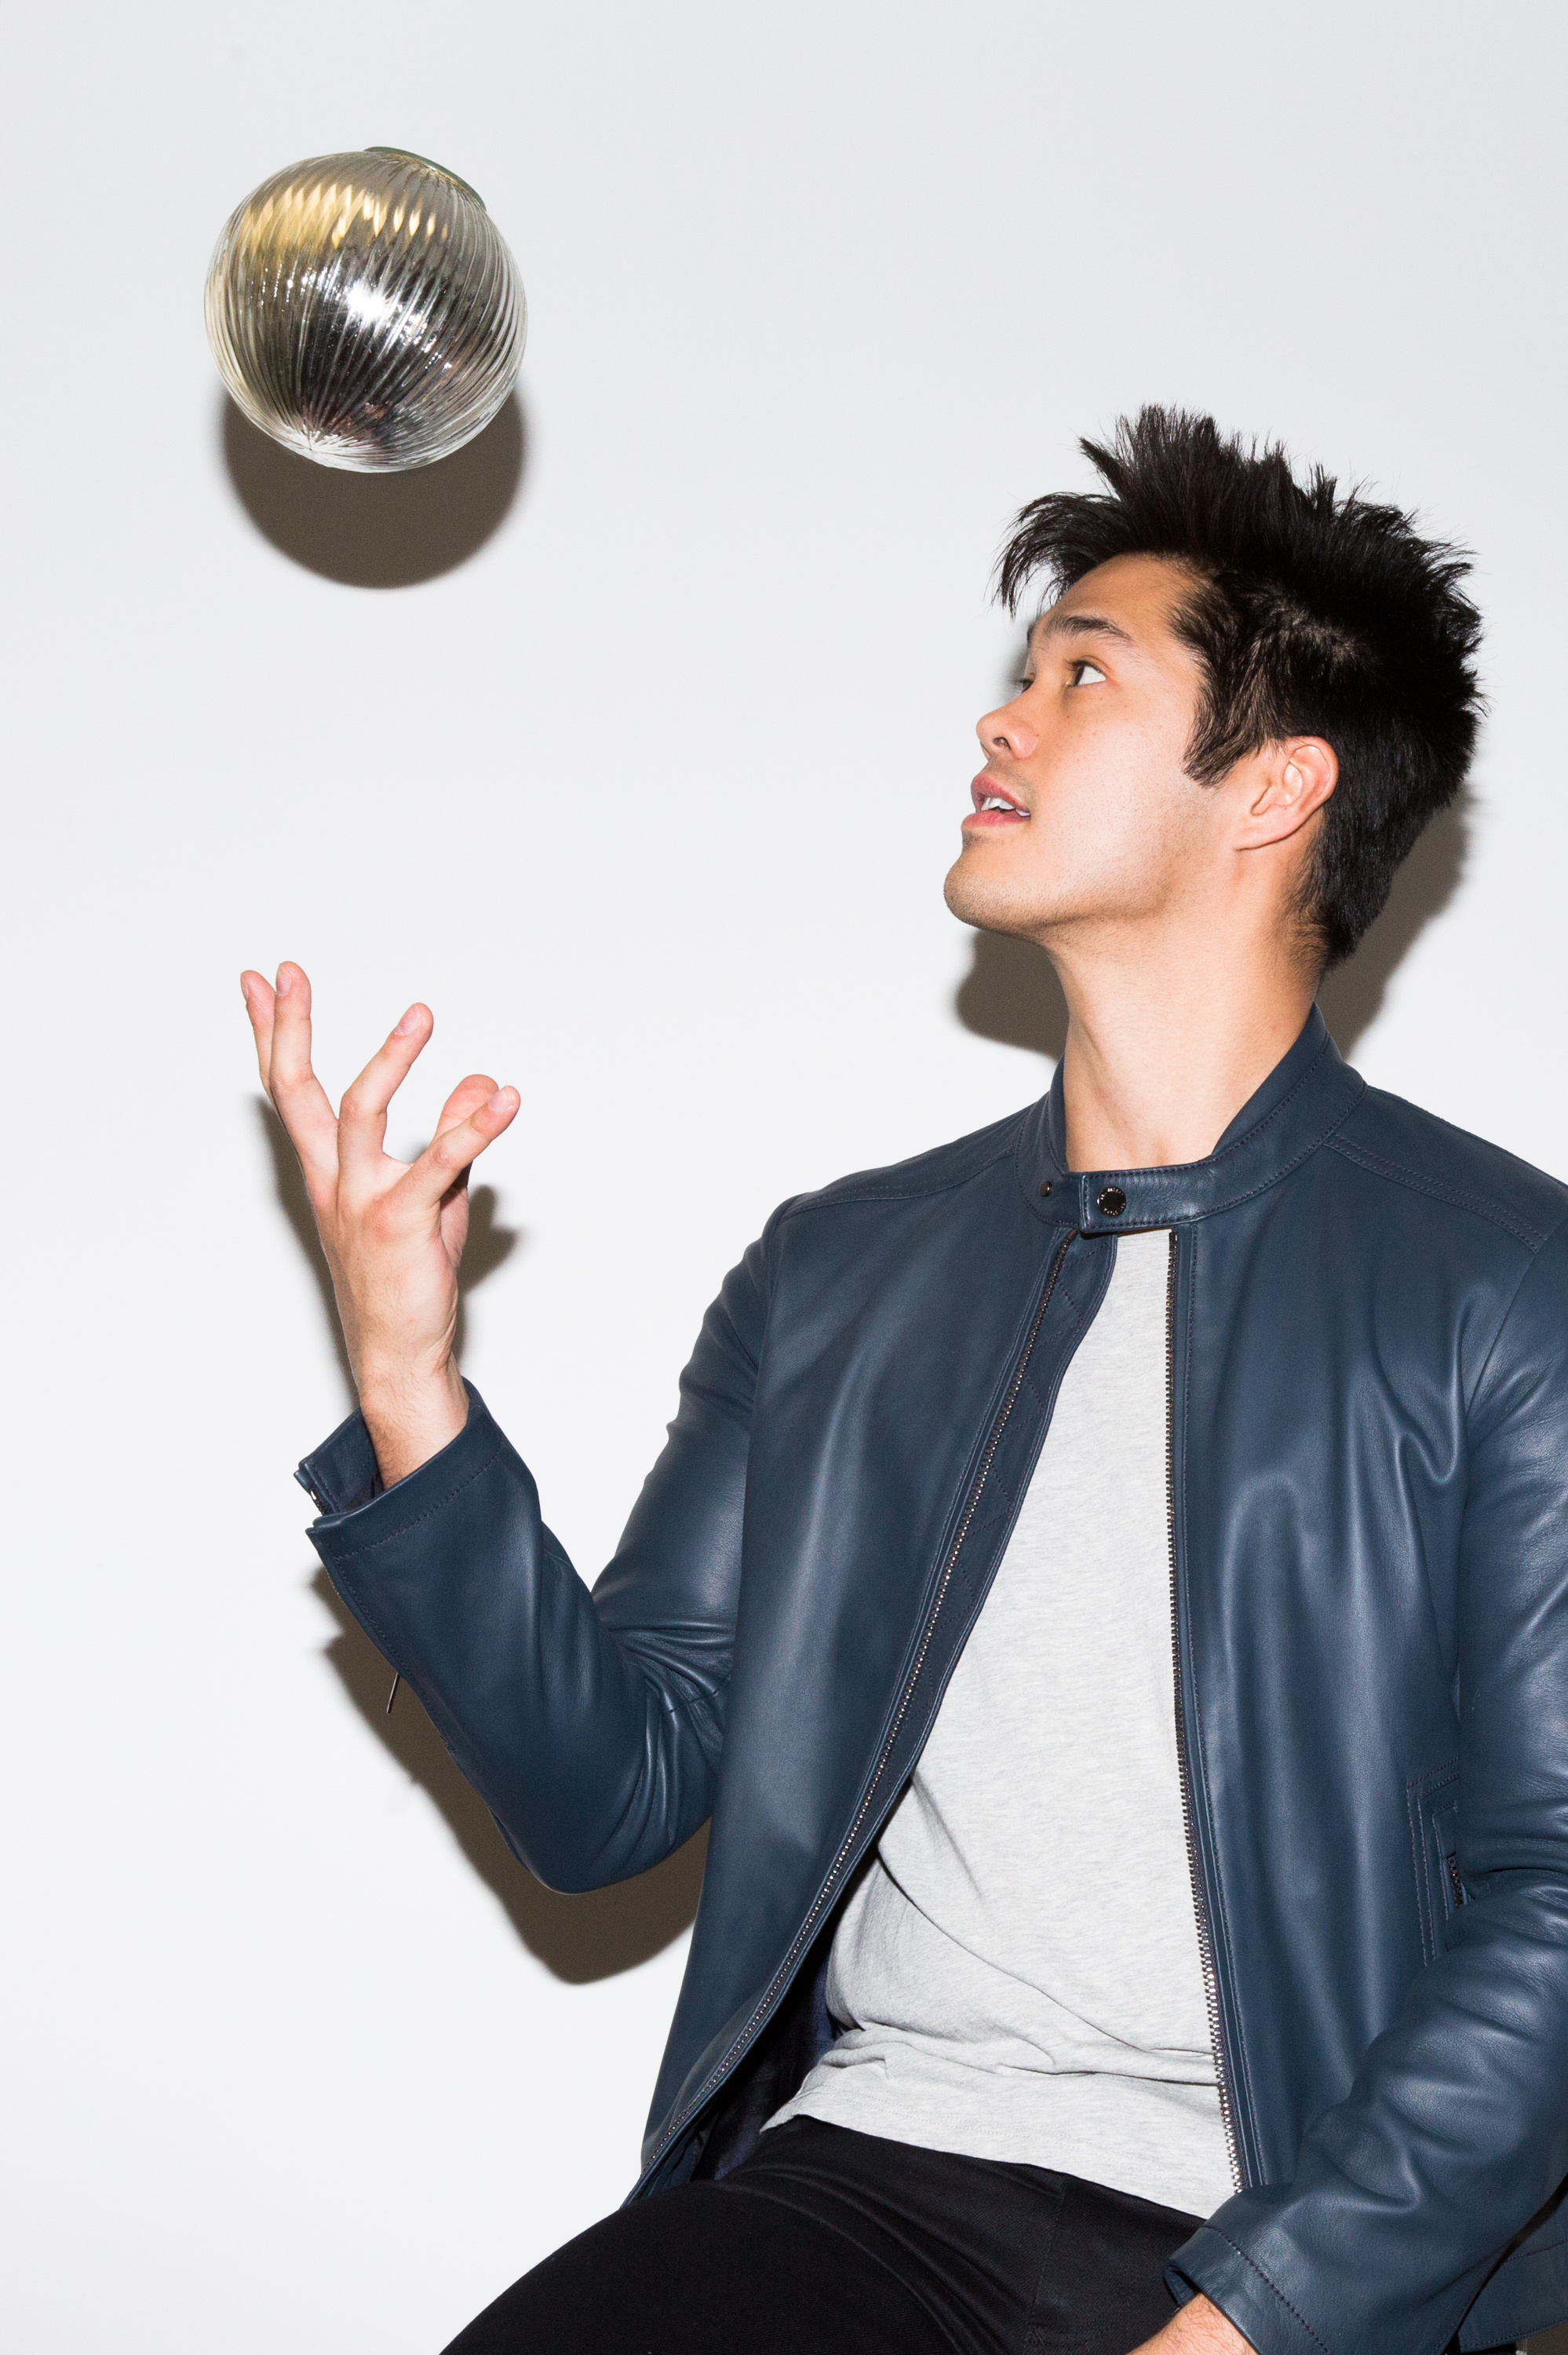 ross butler on 13 reasons why  the art of learning and asian heroes